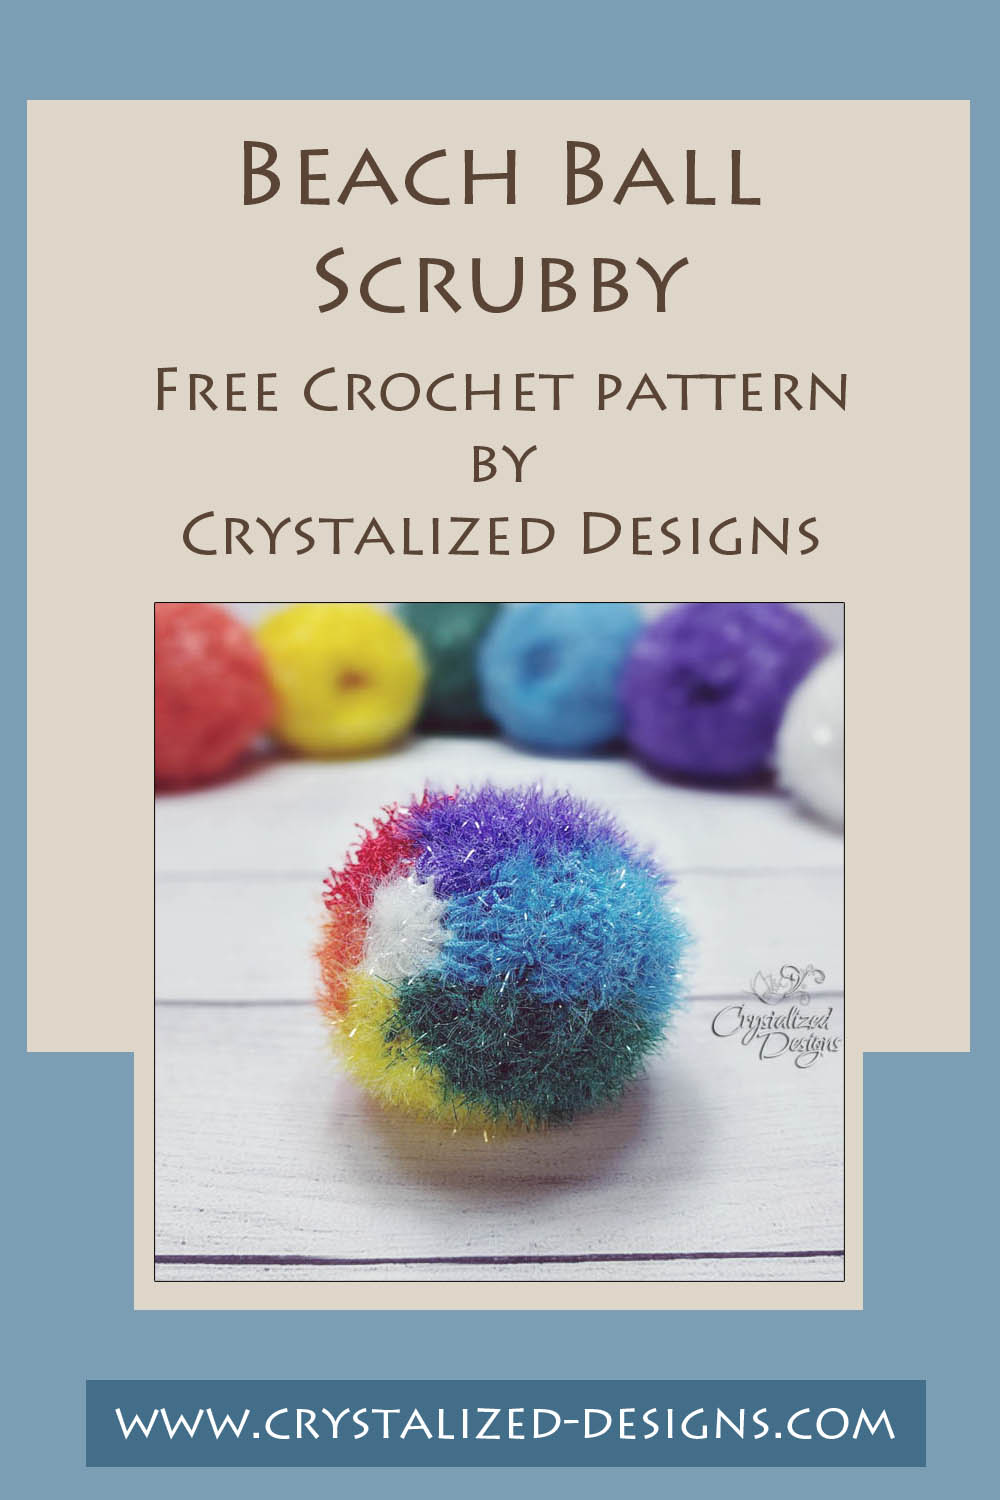 Beach Ball Scrubby Free Crochet Pattern by Crystalized Designs 16